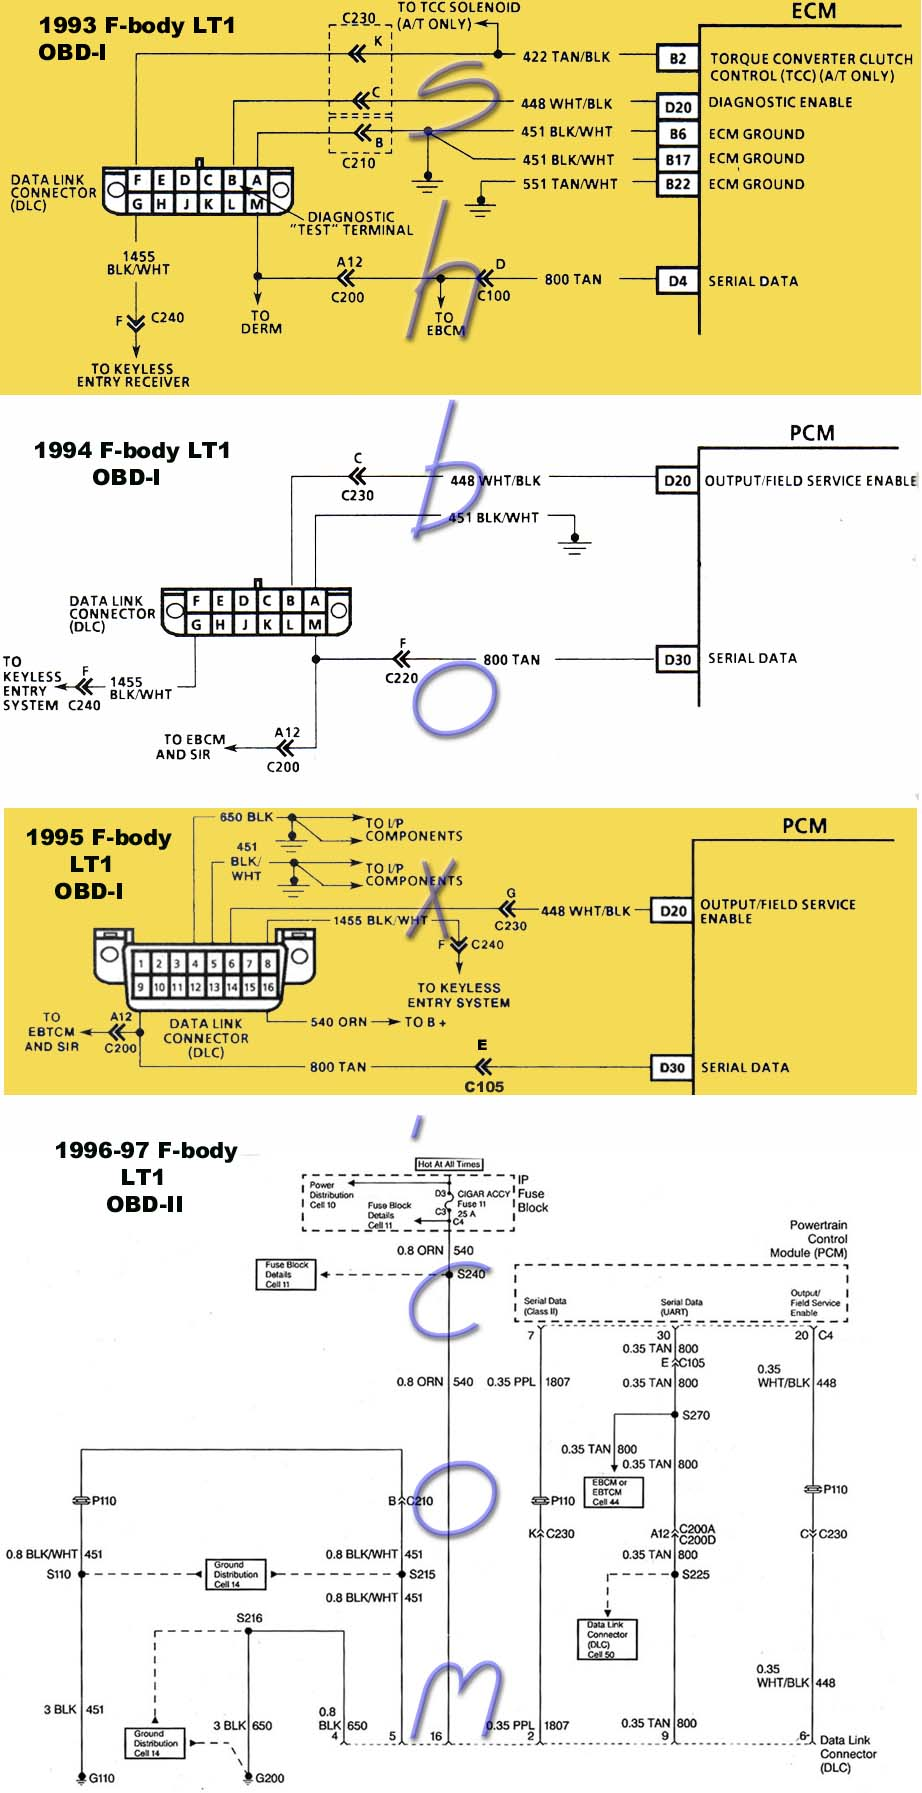 Superb Gm Obd1 Connector Wiring Diagram Get Free Image About Wiring Diagram Wiring 101 Mentrastrewellnesstrialsorg